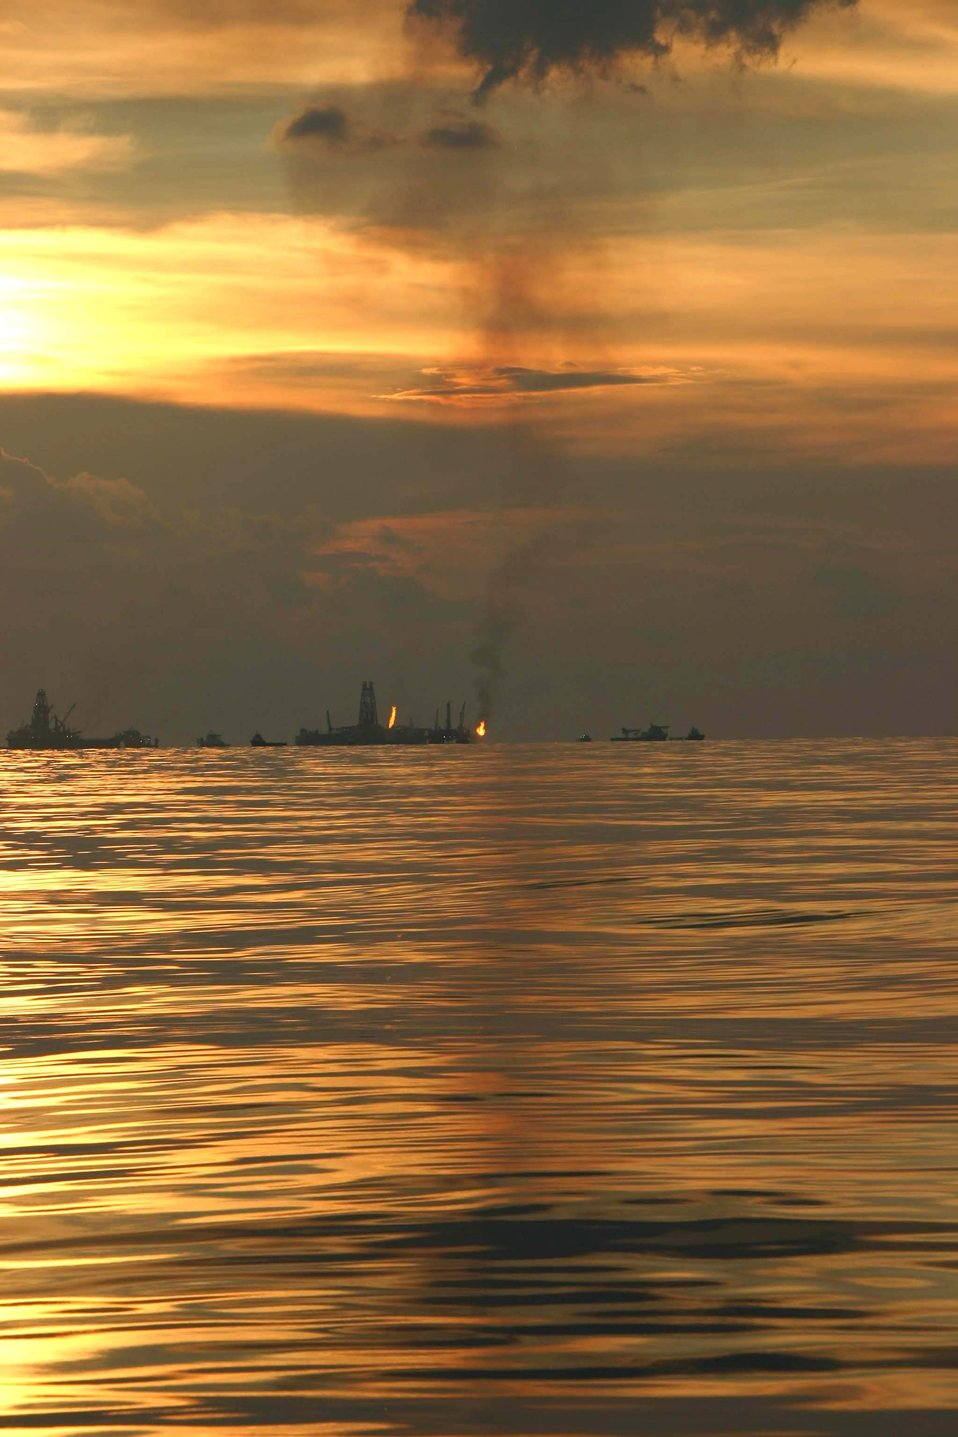 An oil recovery vessel flares gases during the summer 2010 oil spill.  NOAA researchers and colleagues used atmospheric measurements during the spill to derive independent estimates of the recovery rate, oil spill rate and the fate of the spilled gases a